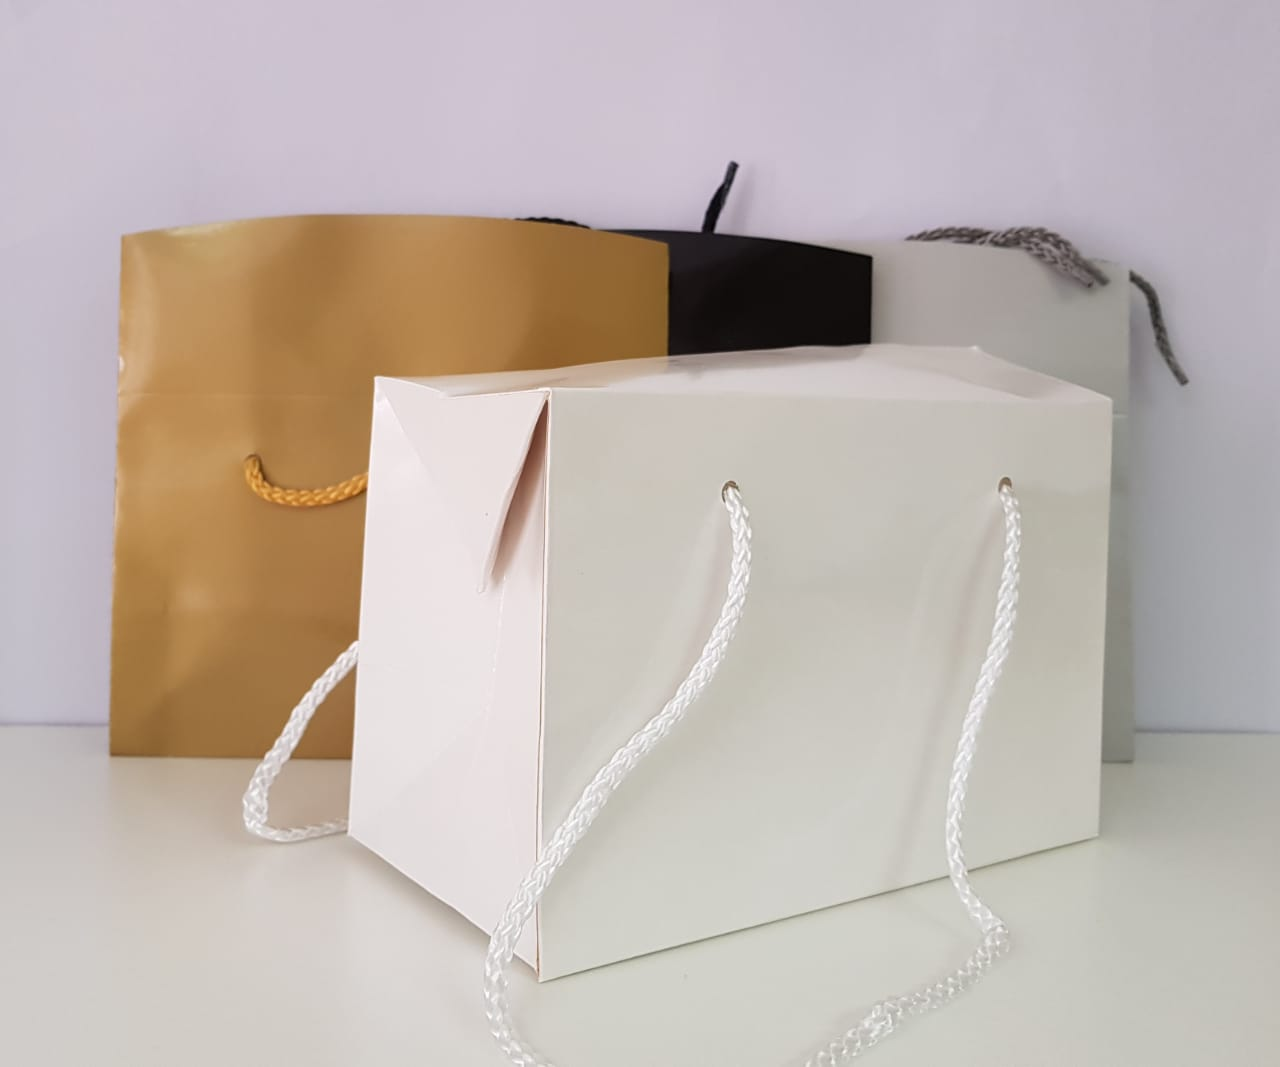 Paper Bags: Marketing Tool Or Eco-Friendly Packaging Option?